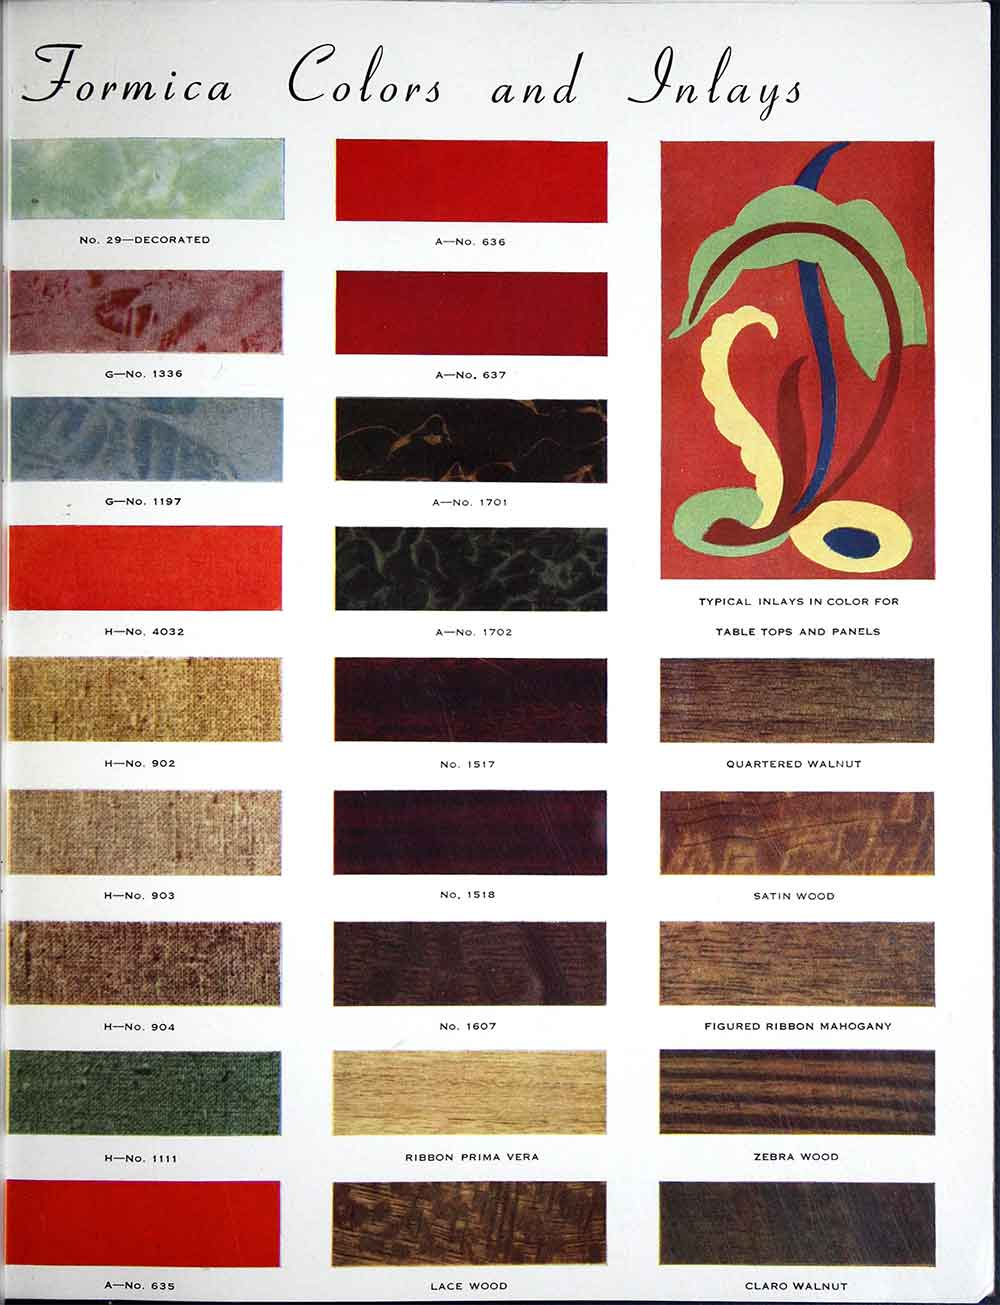 Formica Catalog From 1938 50 Colors And Designs 12